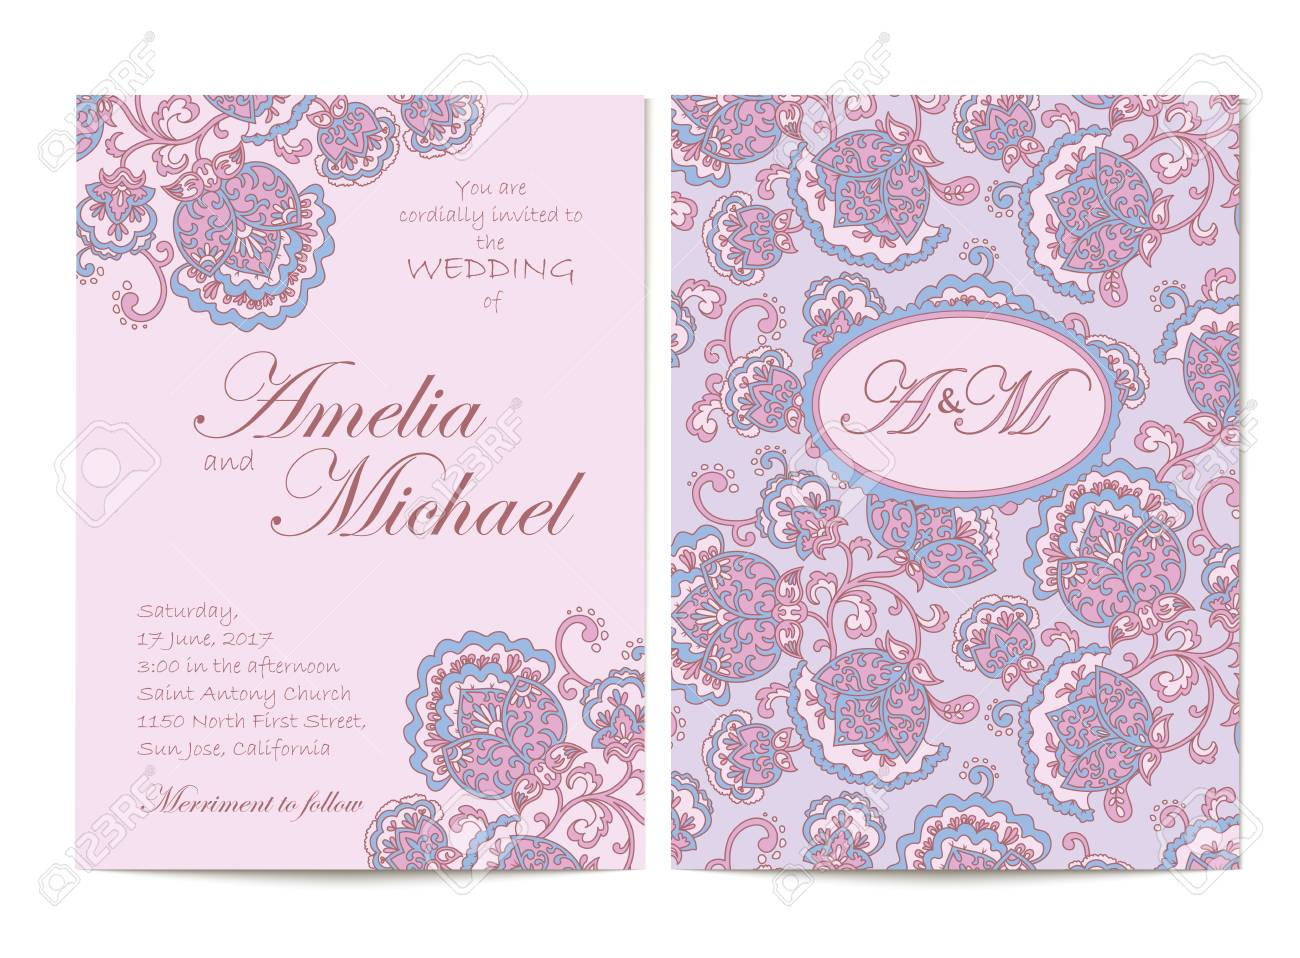 Elegant wedding invitation card template in light purple colors banco de imagens elegant wedding invitation card template in light purple colors flyer decorated with ornamental flower greeting card with floral stopboris Images